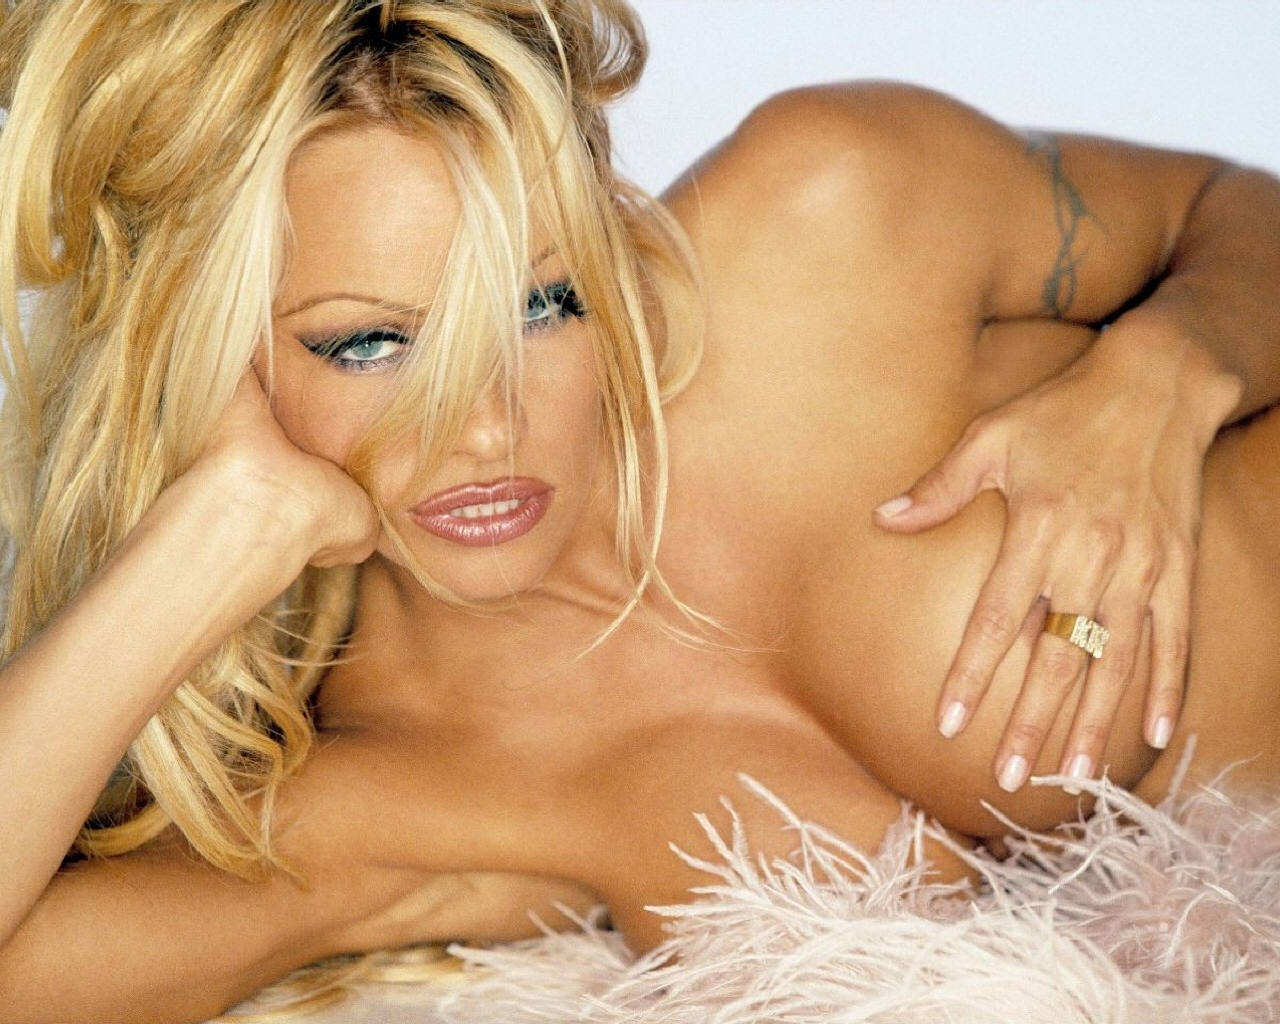 http://3.bp.blogspot.com/-v2q63pTdtWs/TrIr0Z_zpZI/AAAAAAAADSc/mD9PII7_fRg/s1600/Pamela_Anderson_106_1280x1024_International_Model_Sexy_Wallpaper2011.jpg